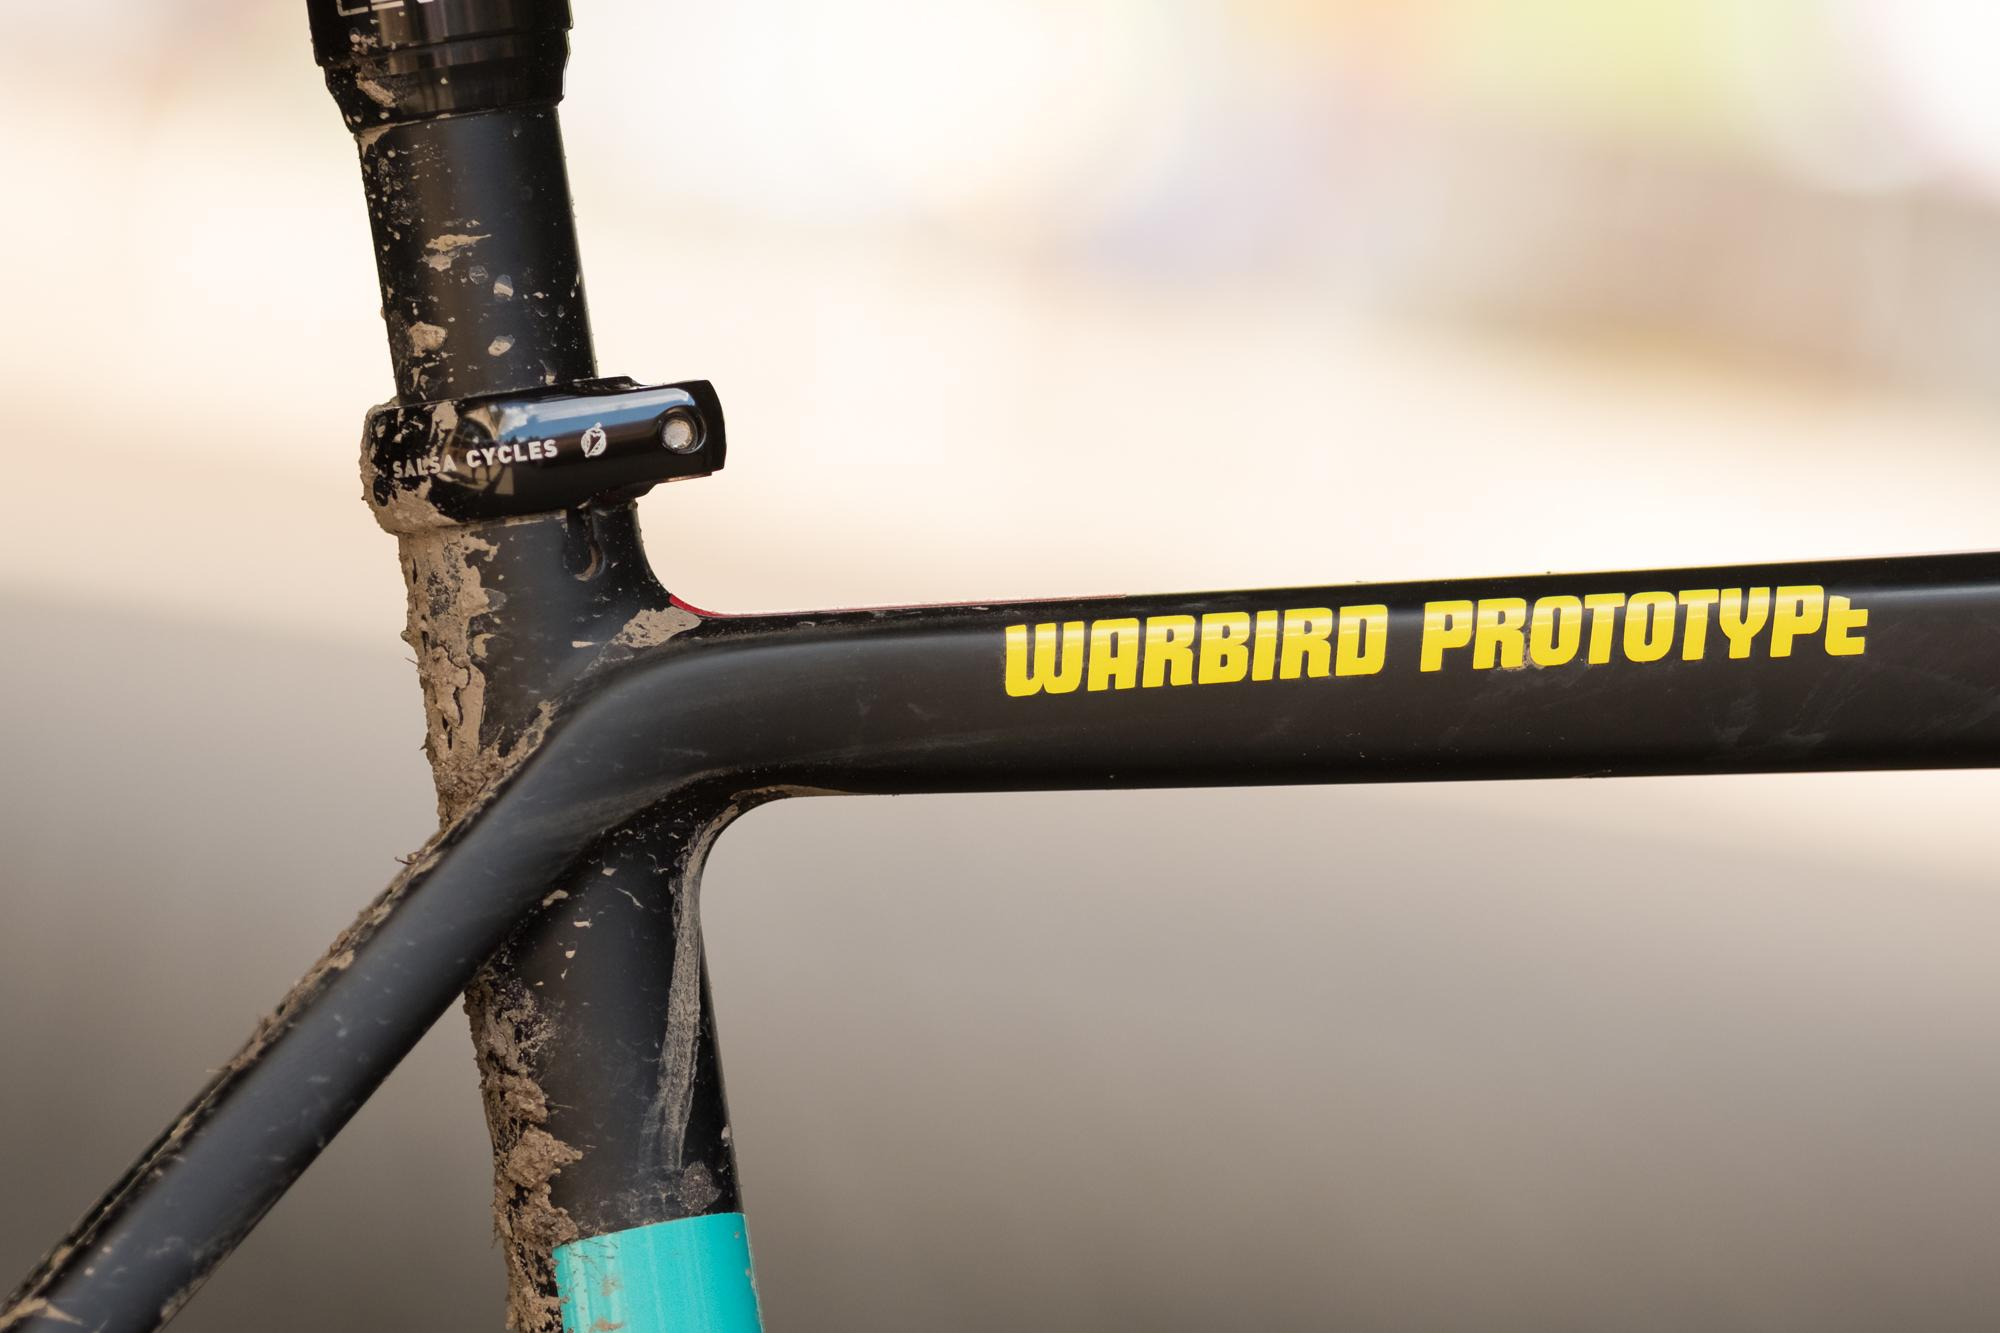 JOE'S PROTYPE SALSA CYCLES WARBIRD (3 of 22)